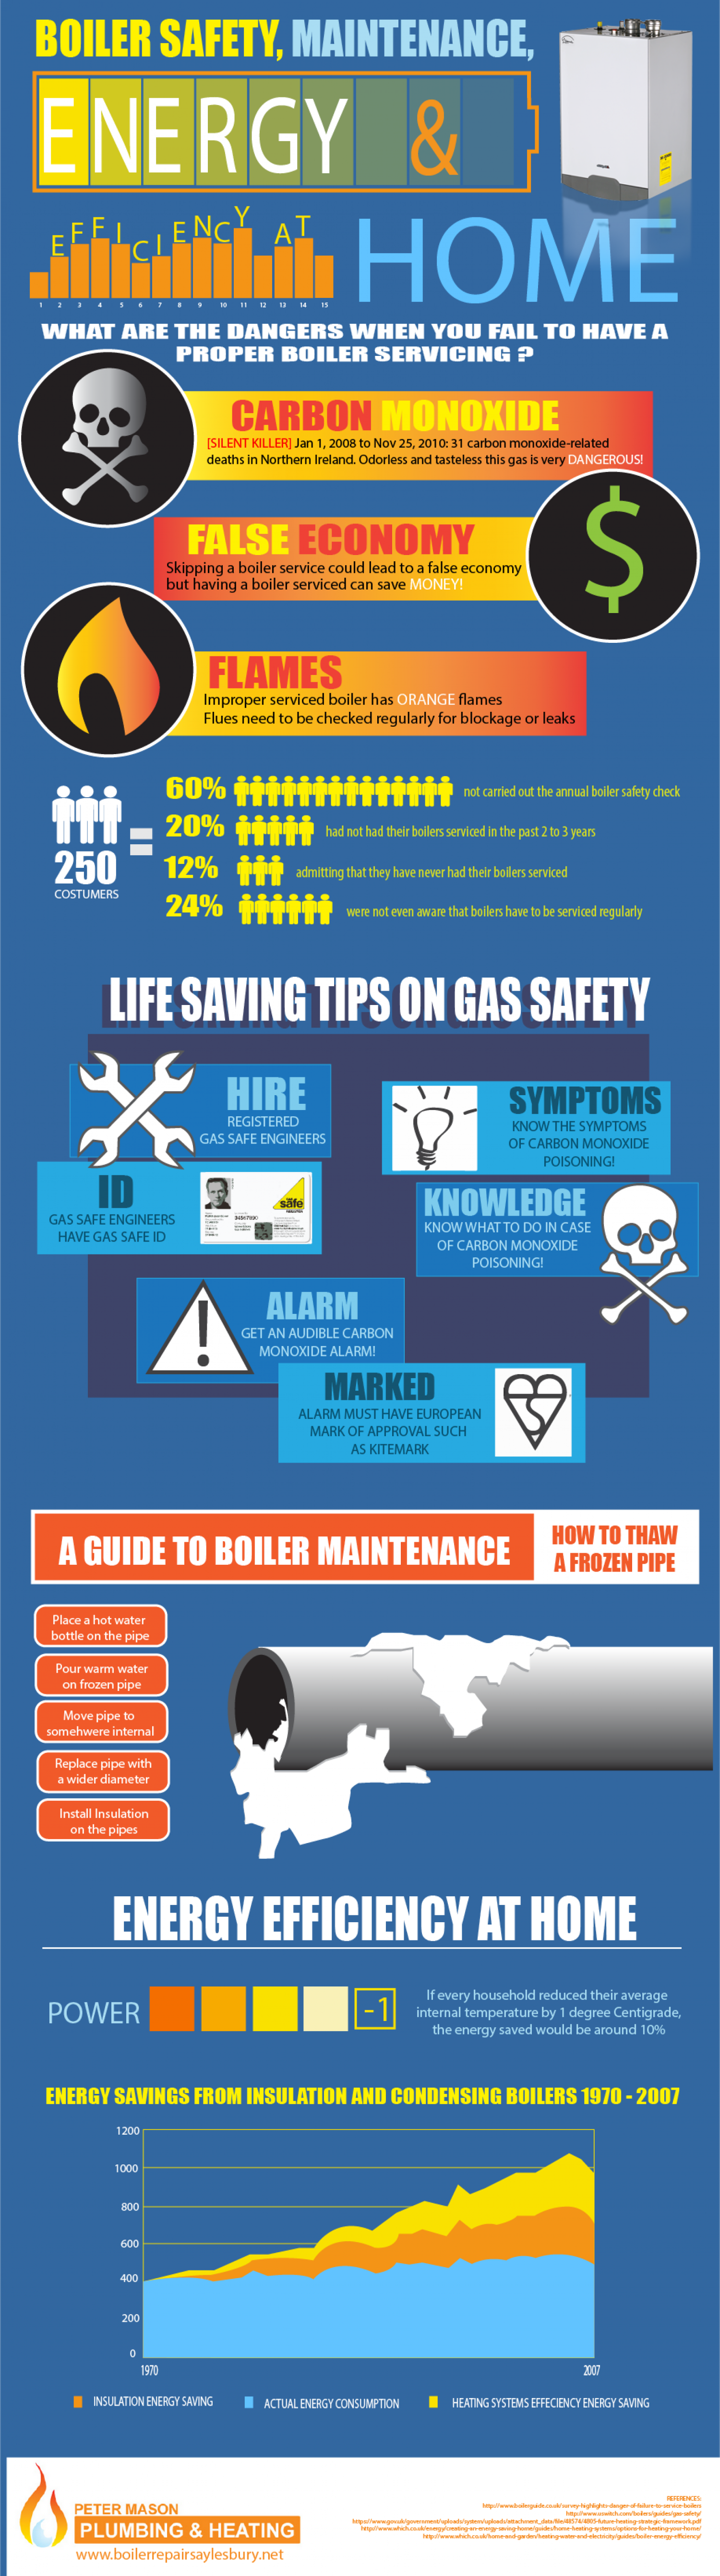 Boiler Safety, Maintenance, and Energy Efficiency at Home Infographic